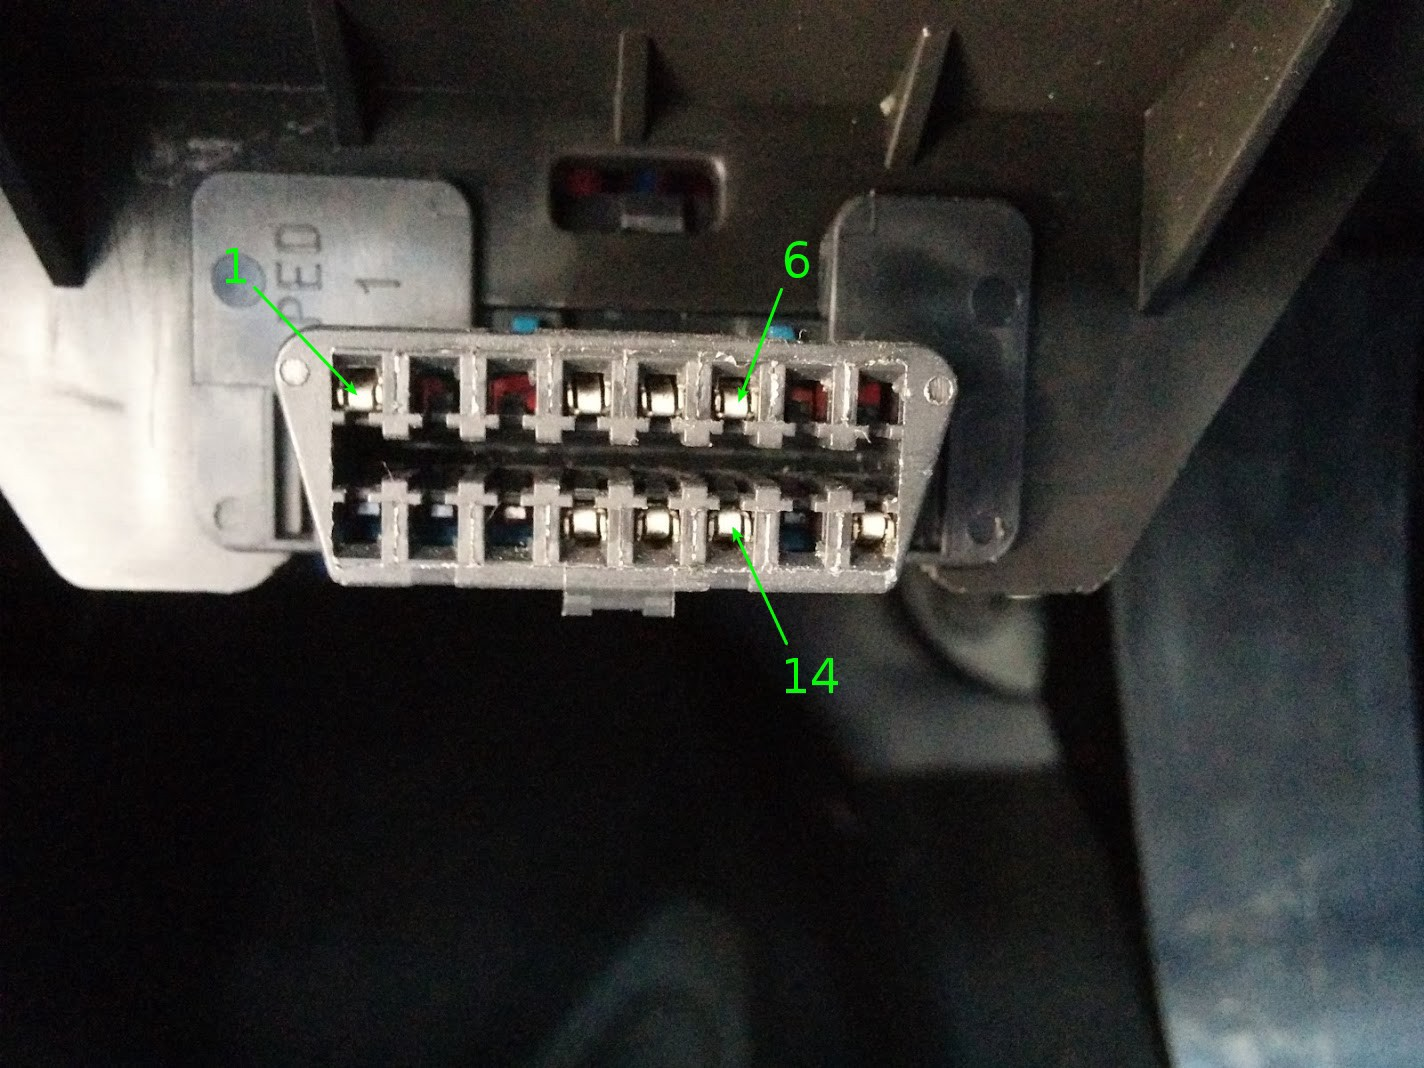 How To Hack A Car Quick Crash Course Freecodecamporg Electronic Components Switches Pull Cord Rapid Online Obd Ii Connector